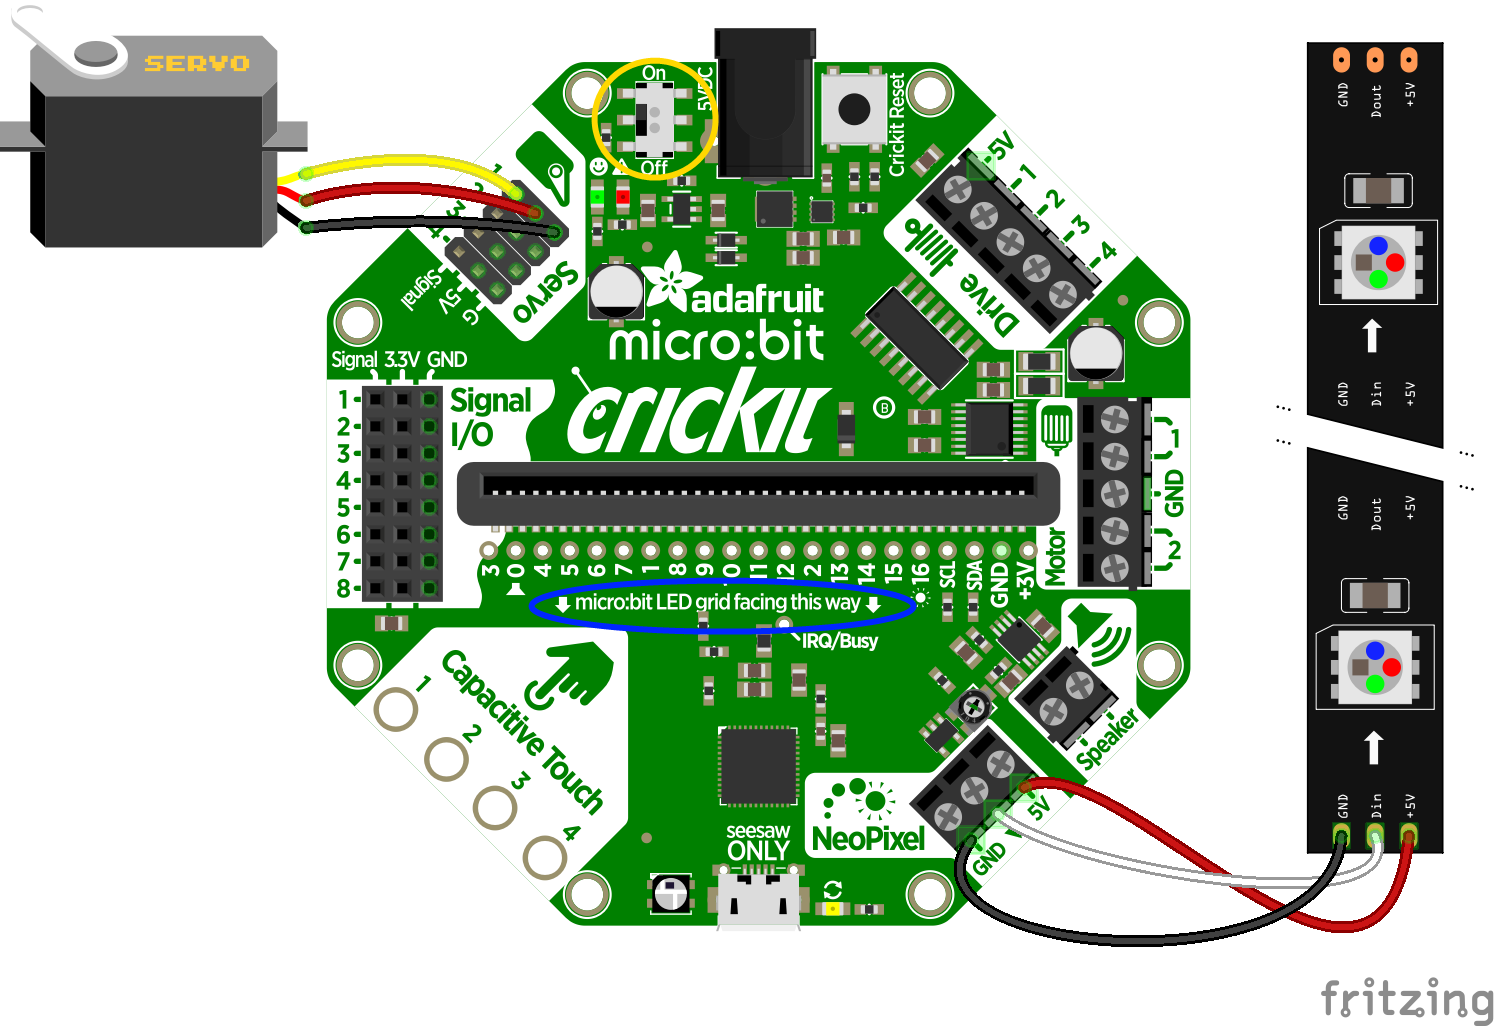 microcontrollers_microbit_crickit_bb2.png